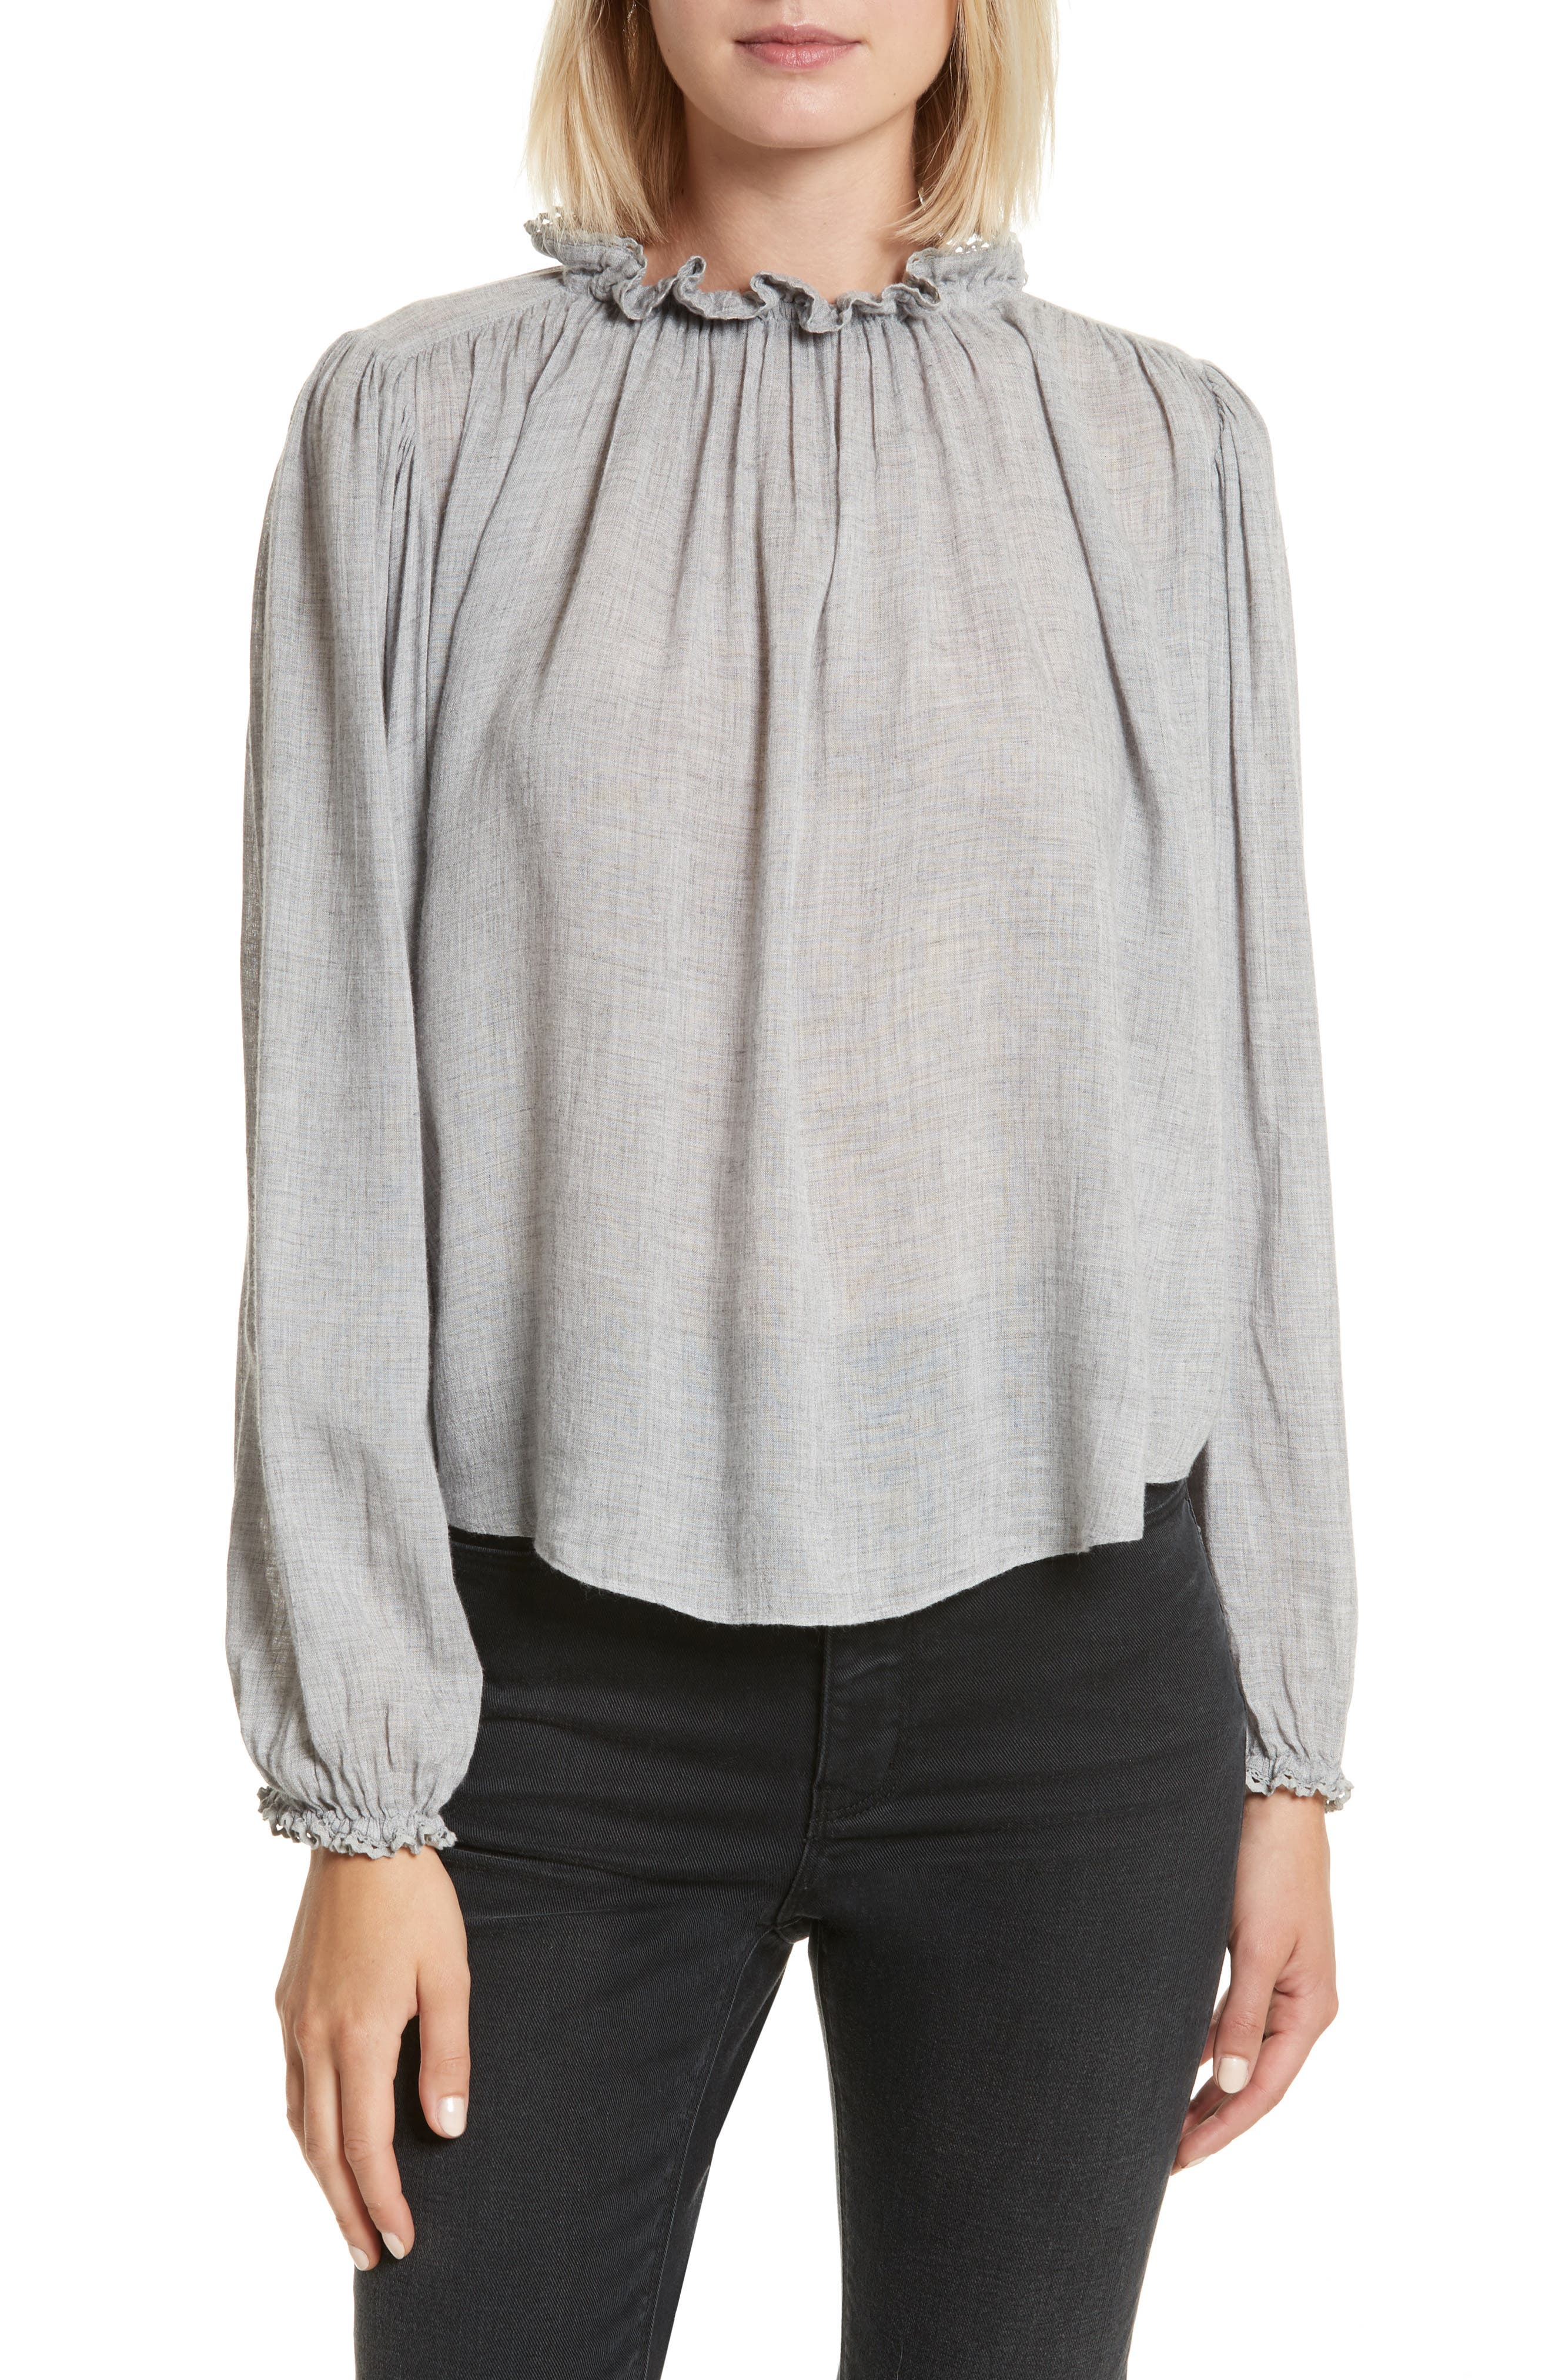 Alternate Image 1 Selected - Rebecca Taylor Scallop Trim Gauze Top